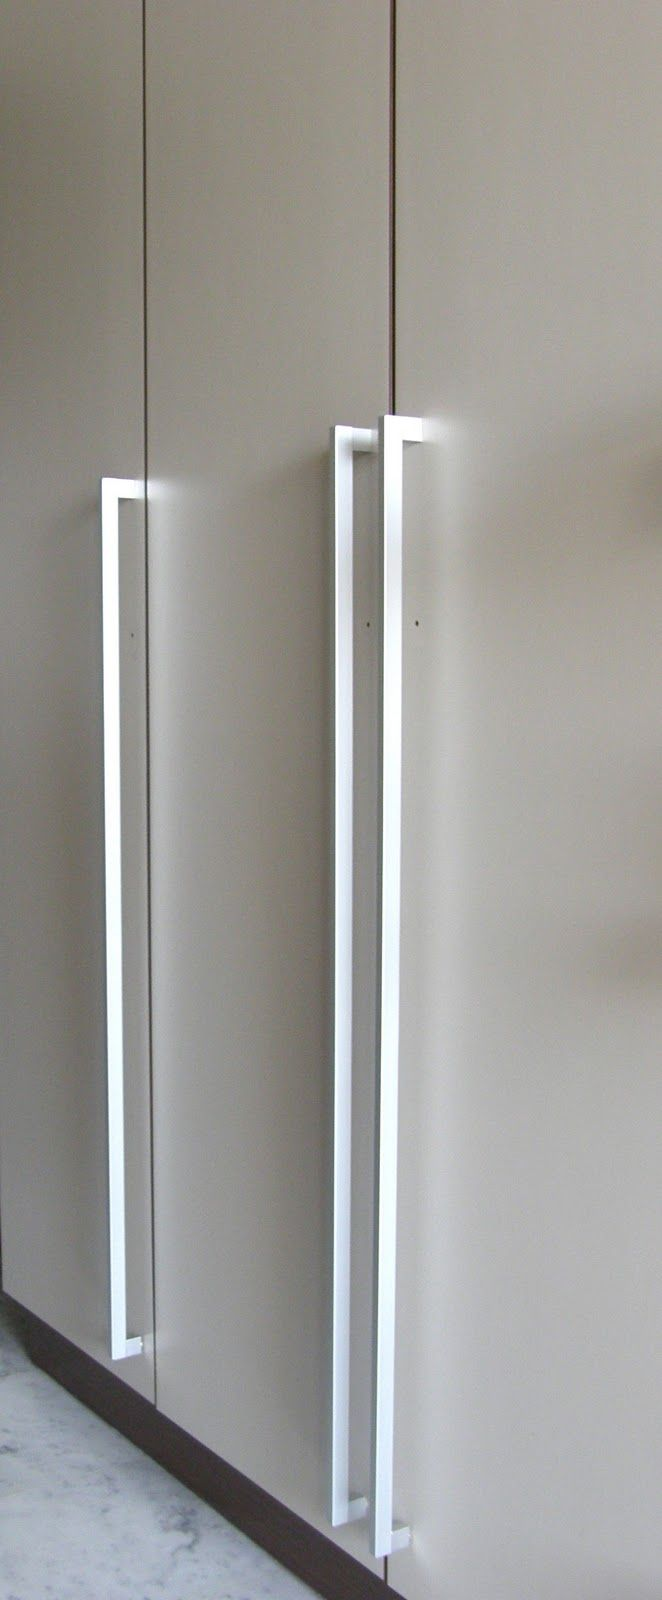 best  wardrobe handles ideas only on pinterest  wardrobe door  - this long handle pull creates a modern touch to any style cabinetry and itoffers elegance in its simplicity suitable for tall doors such aspantries